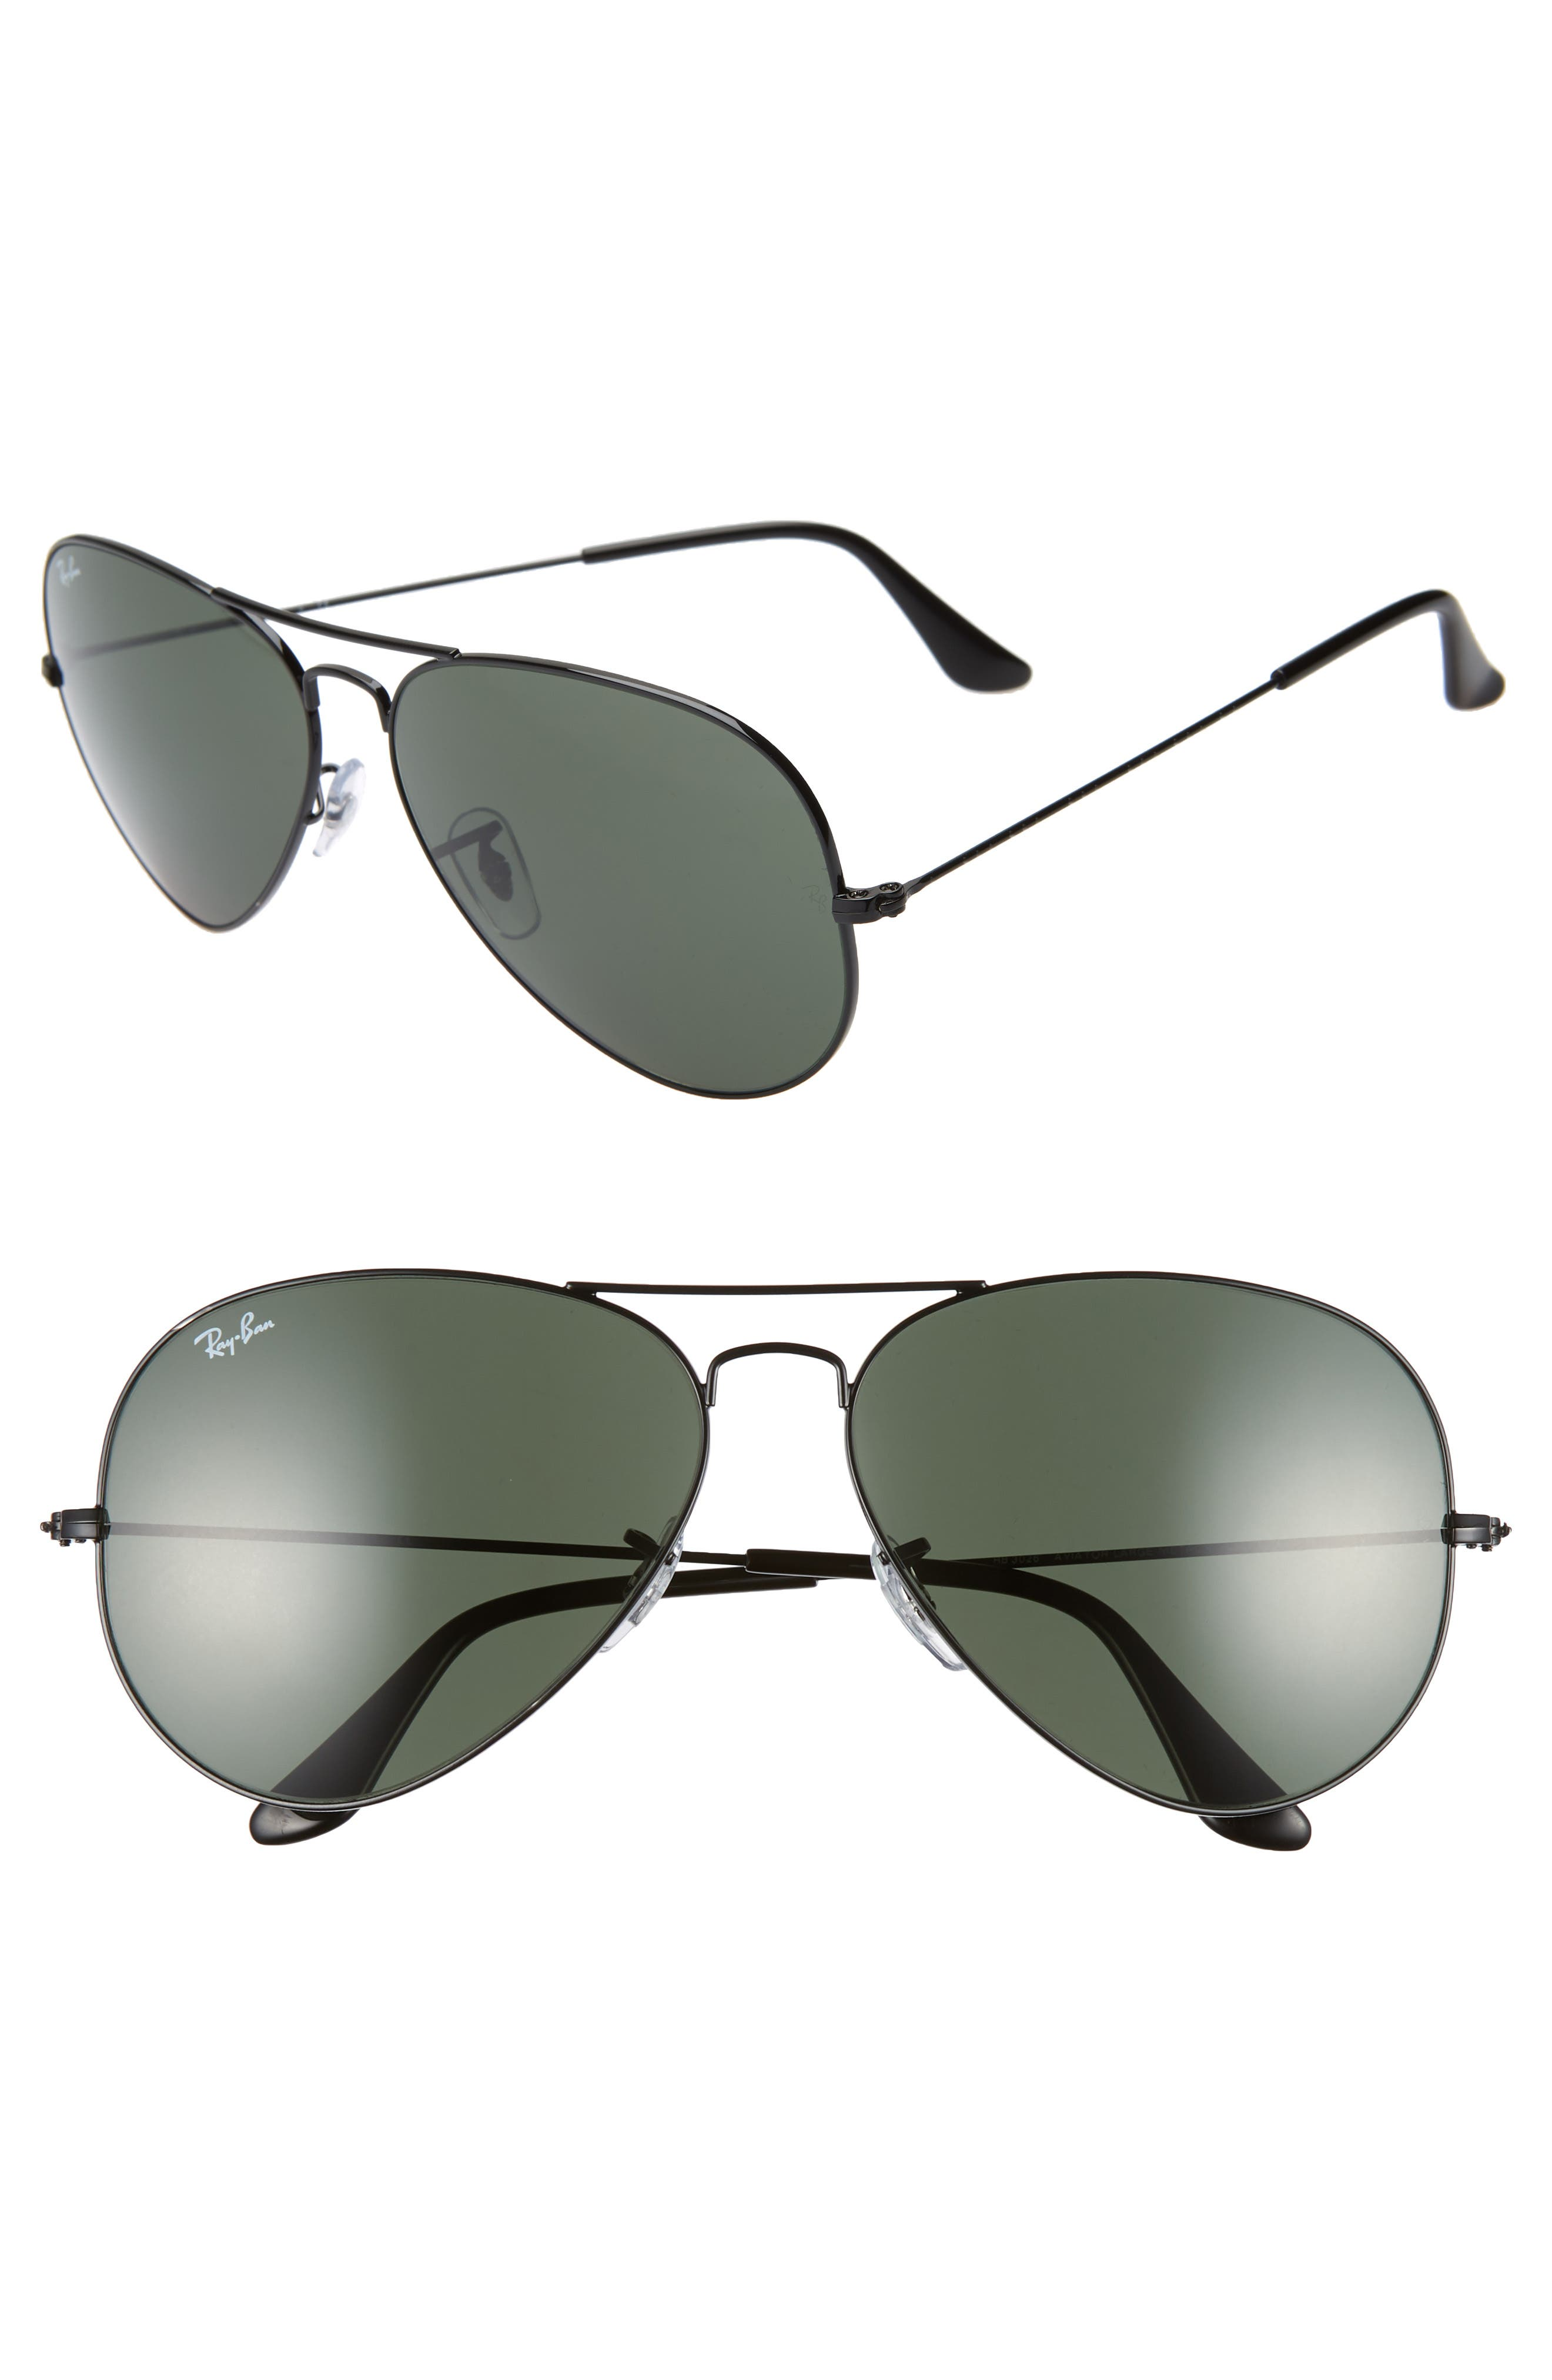 Ray-Ban 62Mm Aviator Sunglasses - Black/ Green Solid